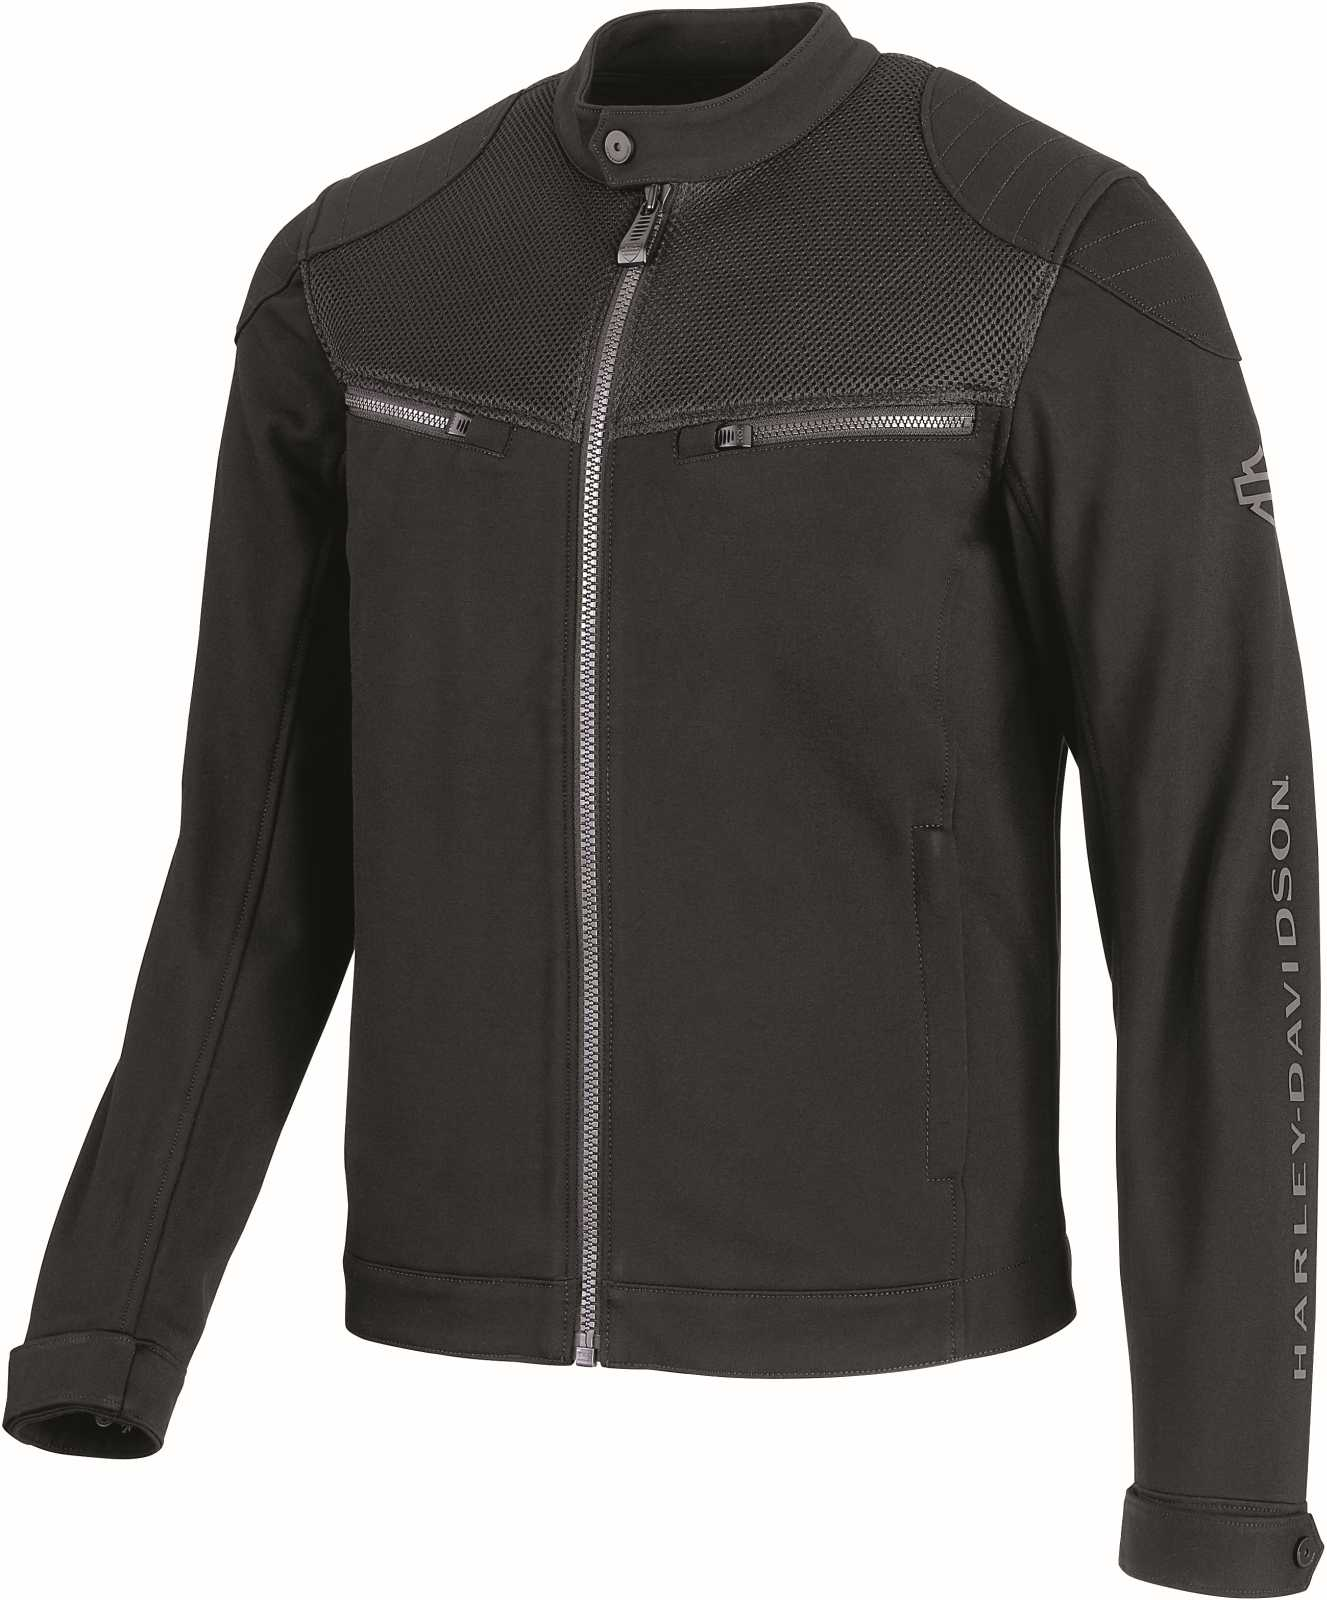 Harley Davidson Softshell Jacket 3D Mesh Accent